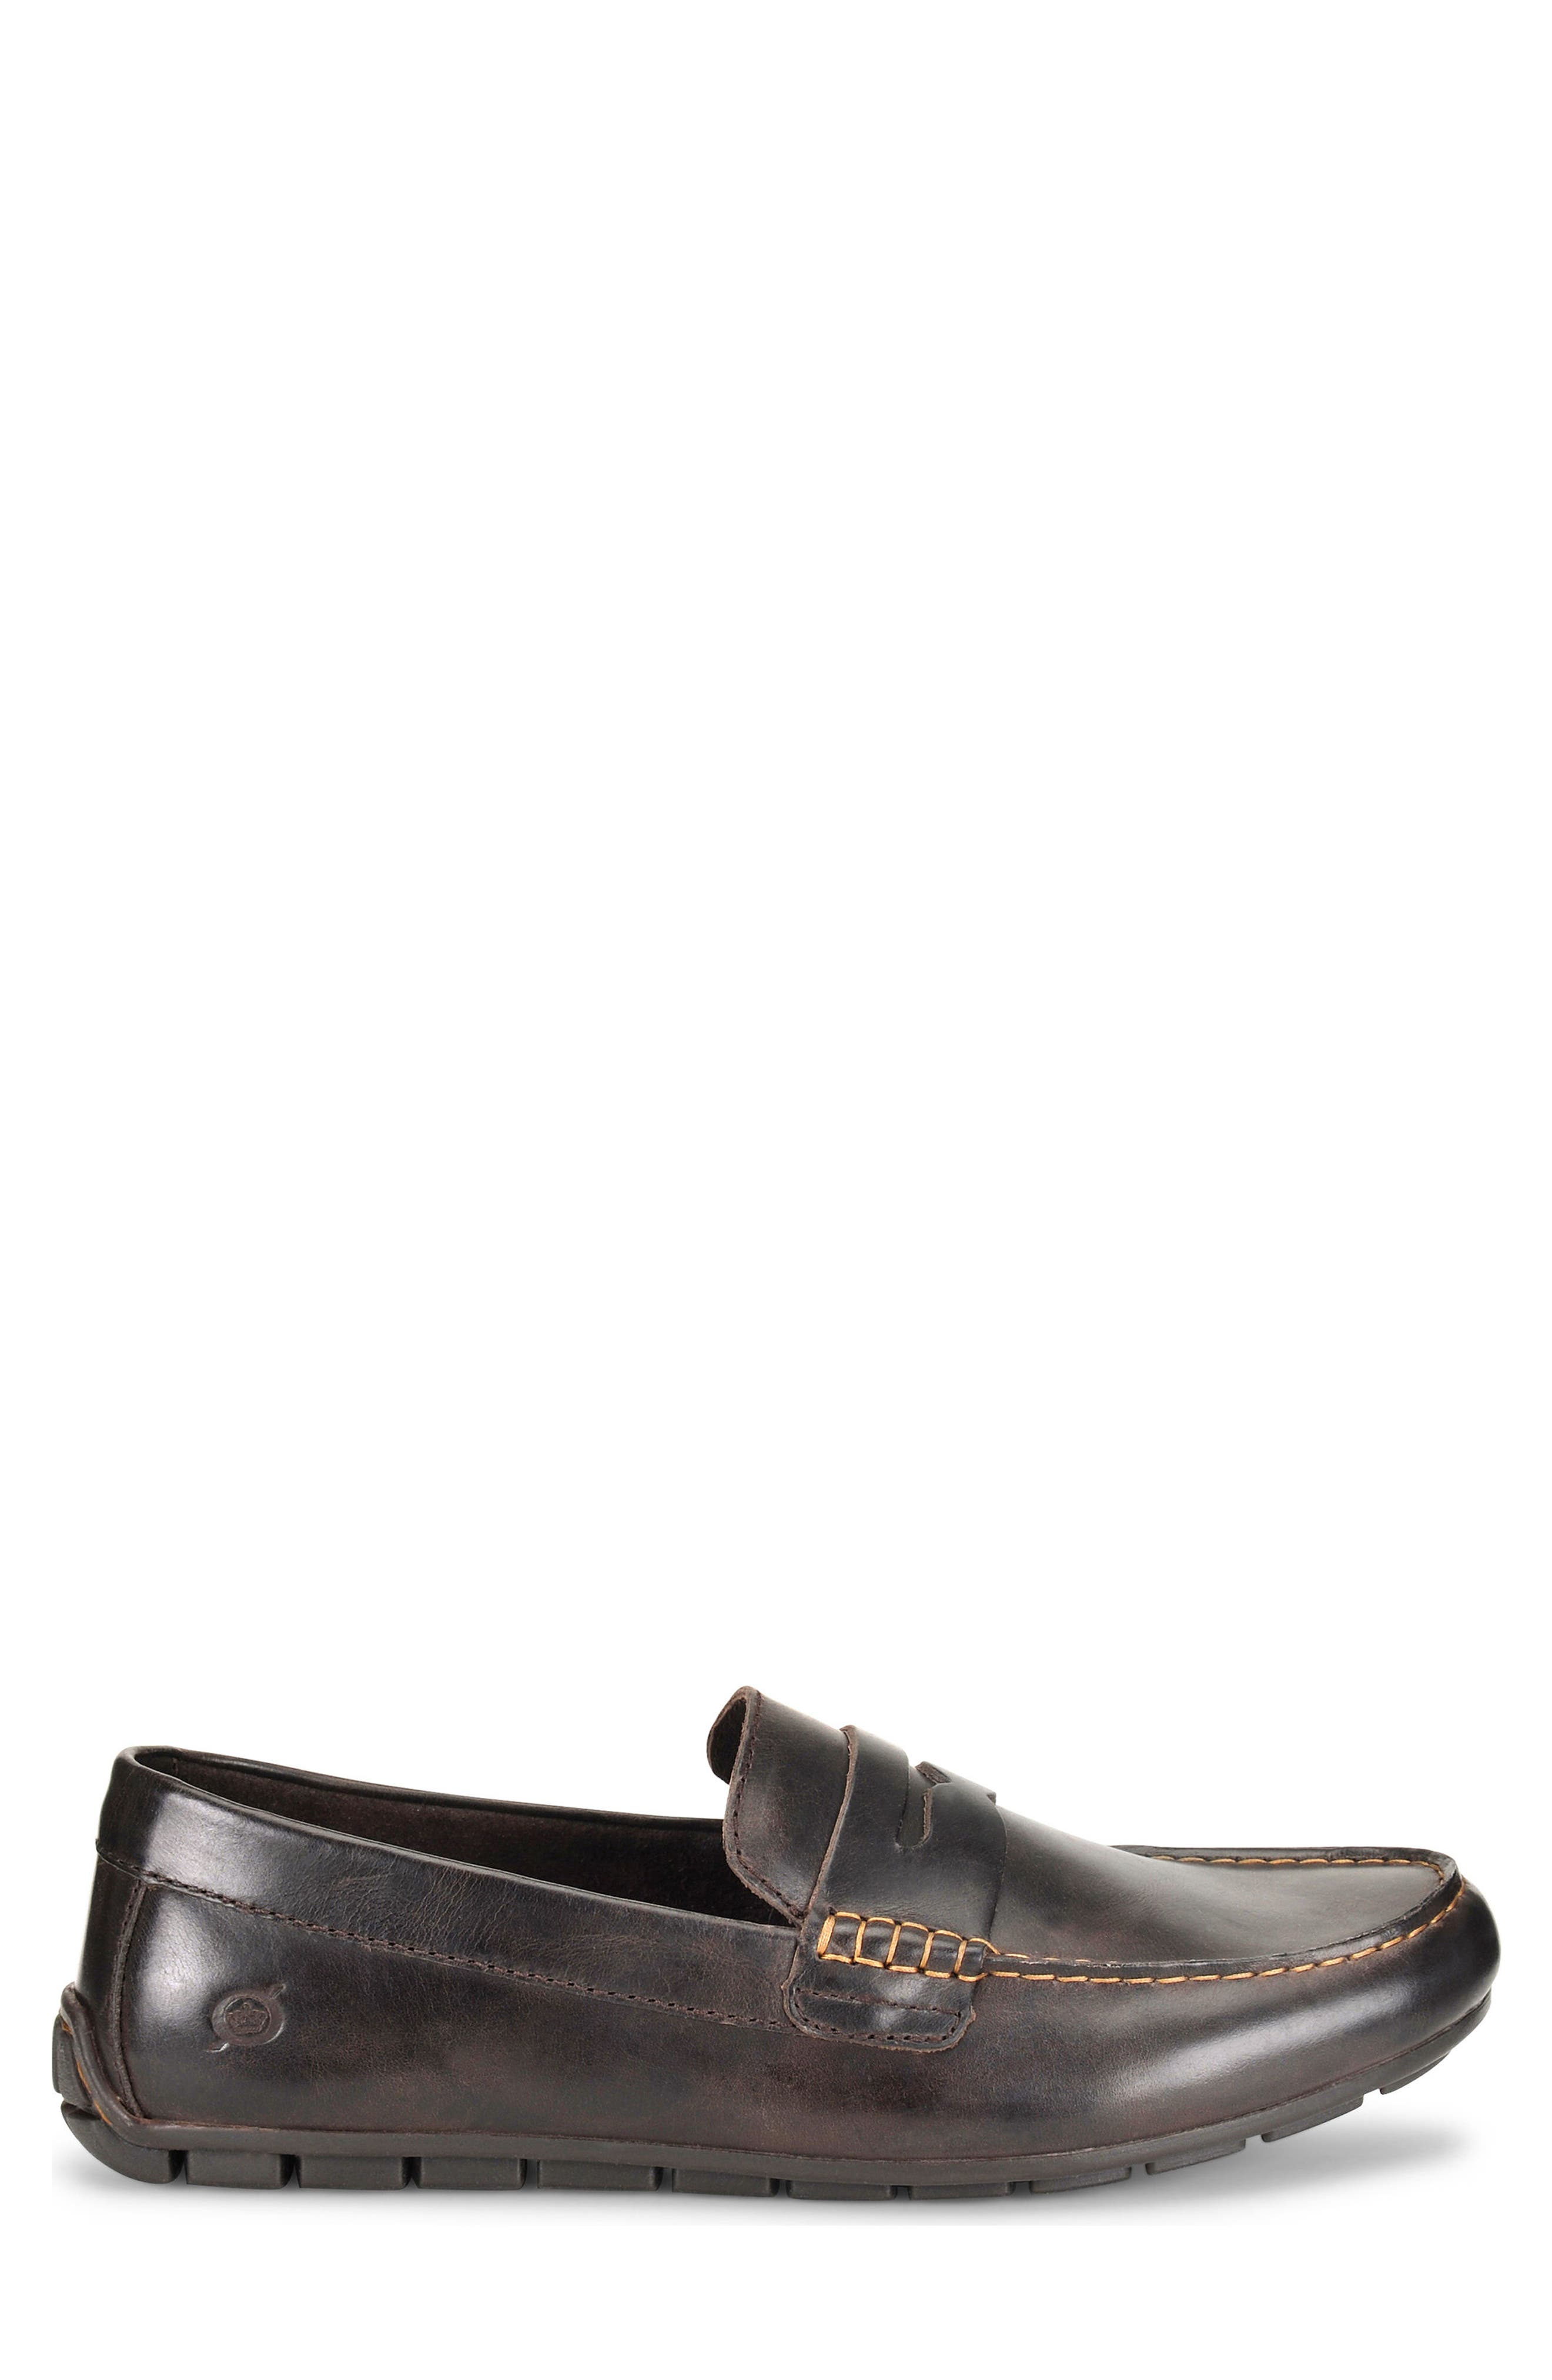 Andes Driving Shoe,                             Alternate thumbnail 3, color,                             Chocolate